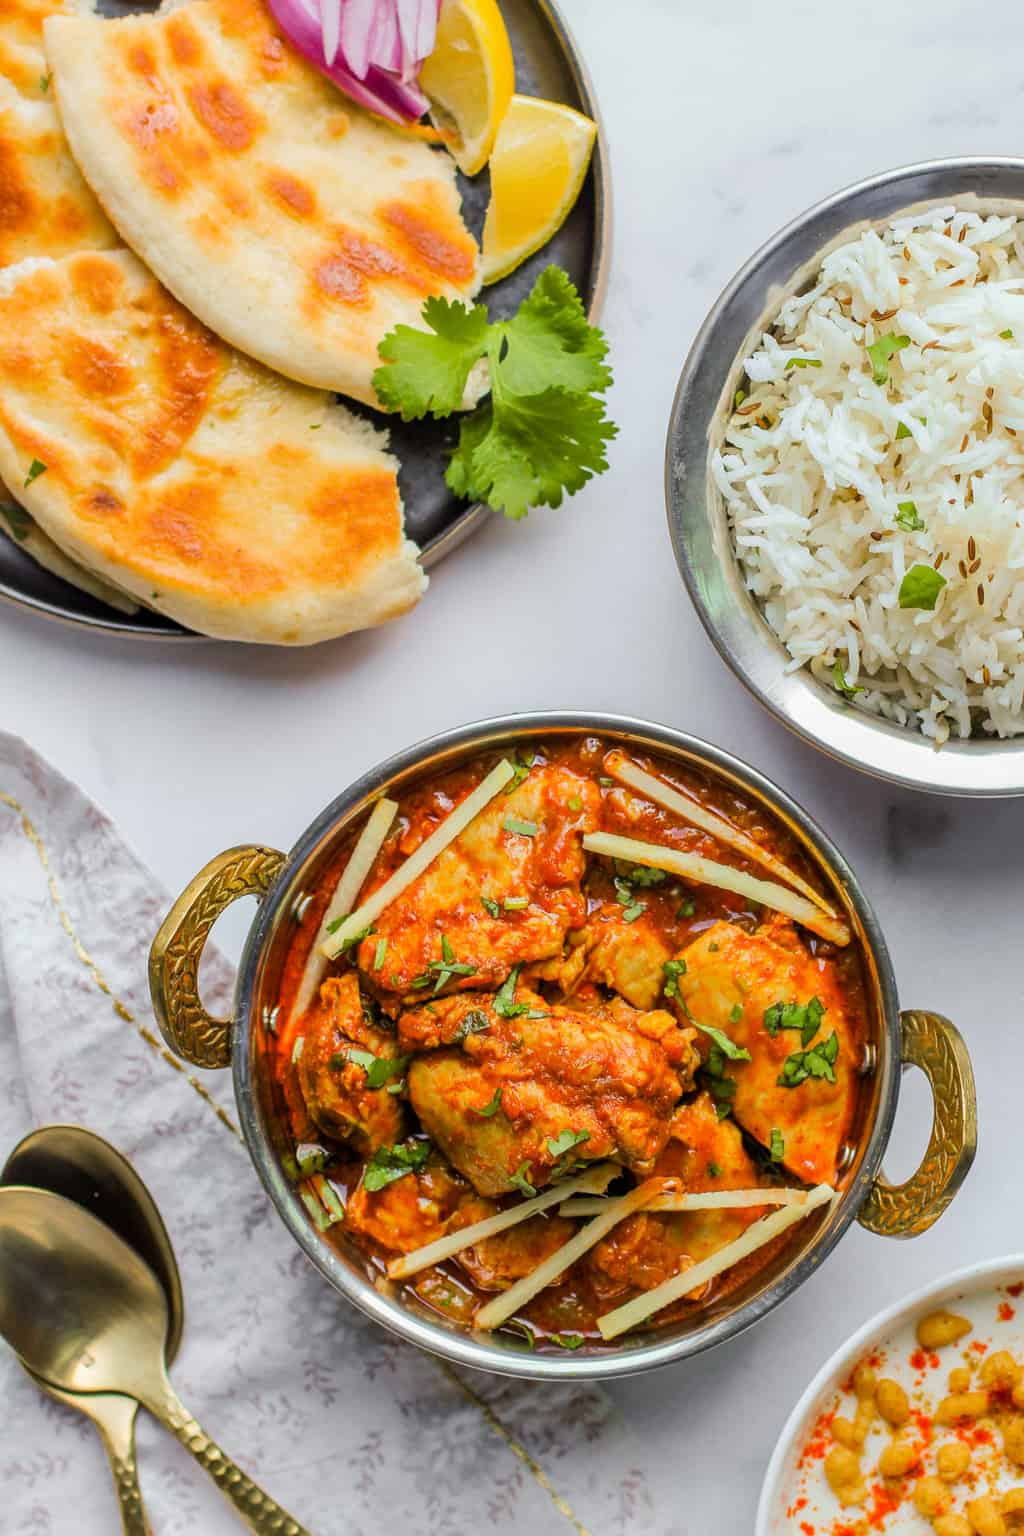 chicken Karahi with rice and naan